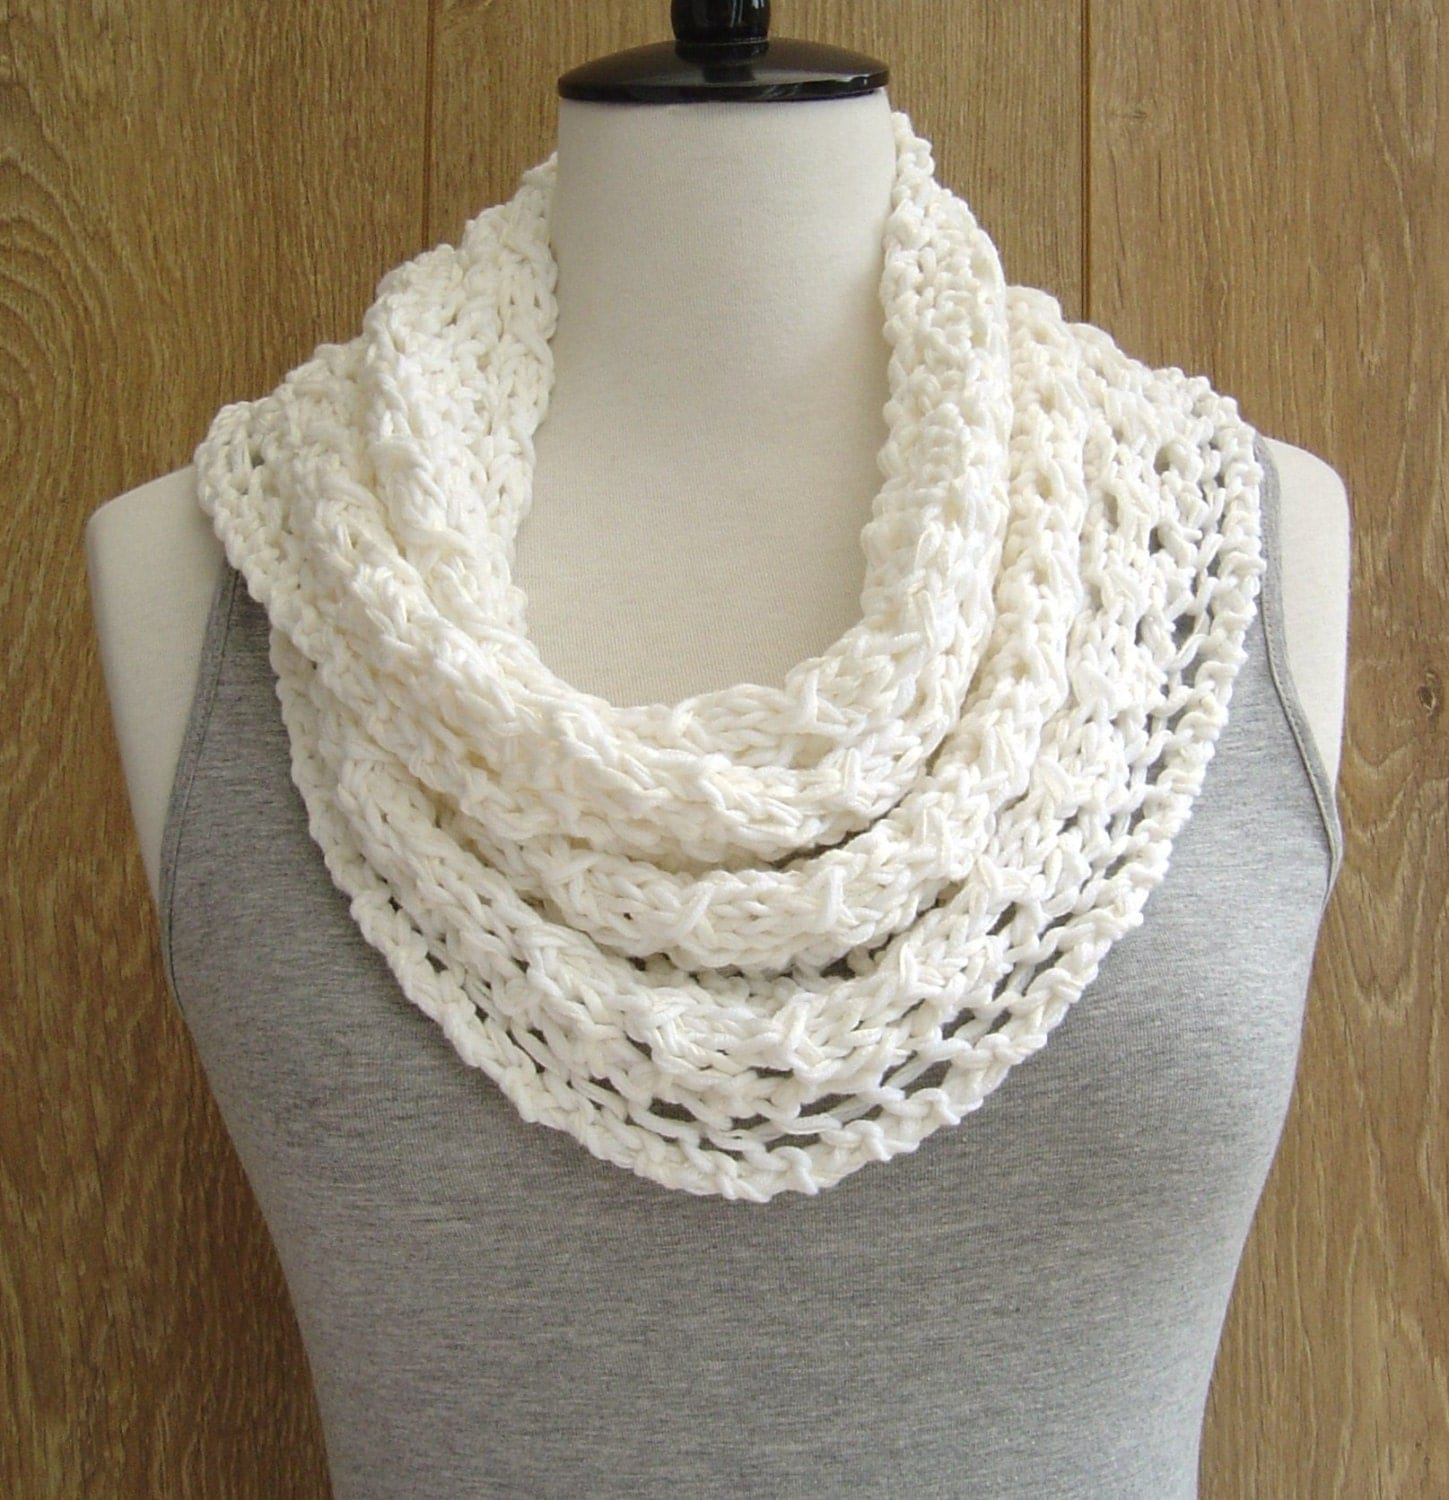 Simple Lace Knitting Patterns : KNITTING PATTERN Lace Scarf Simple Knit by Richmondhillknits